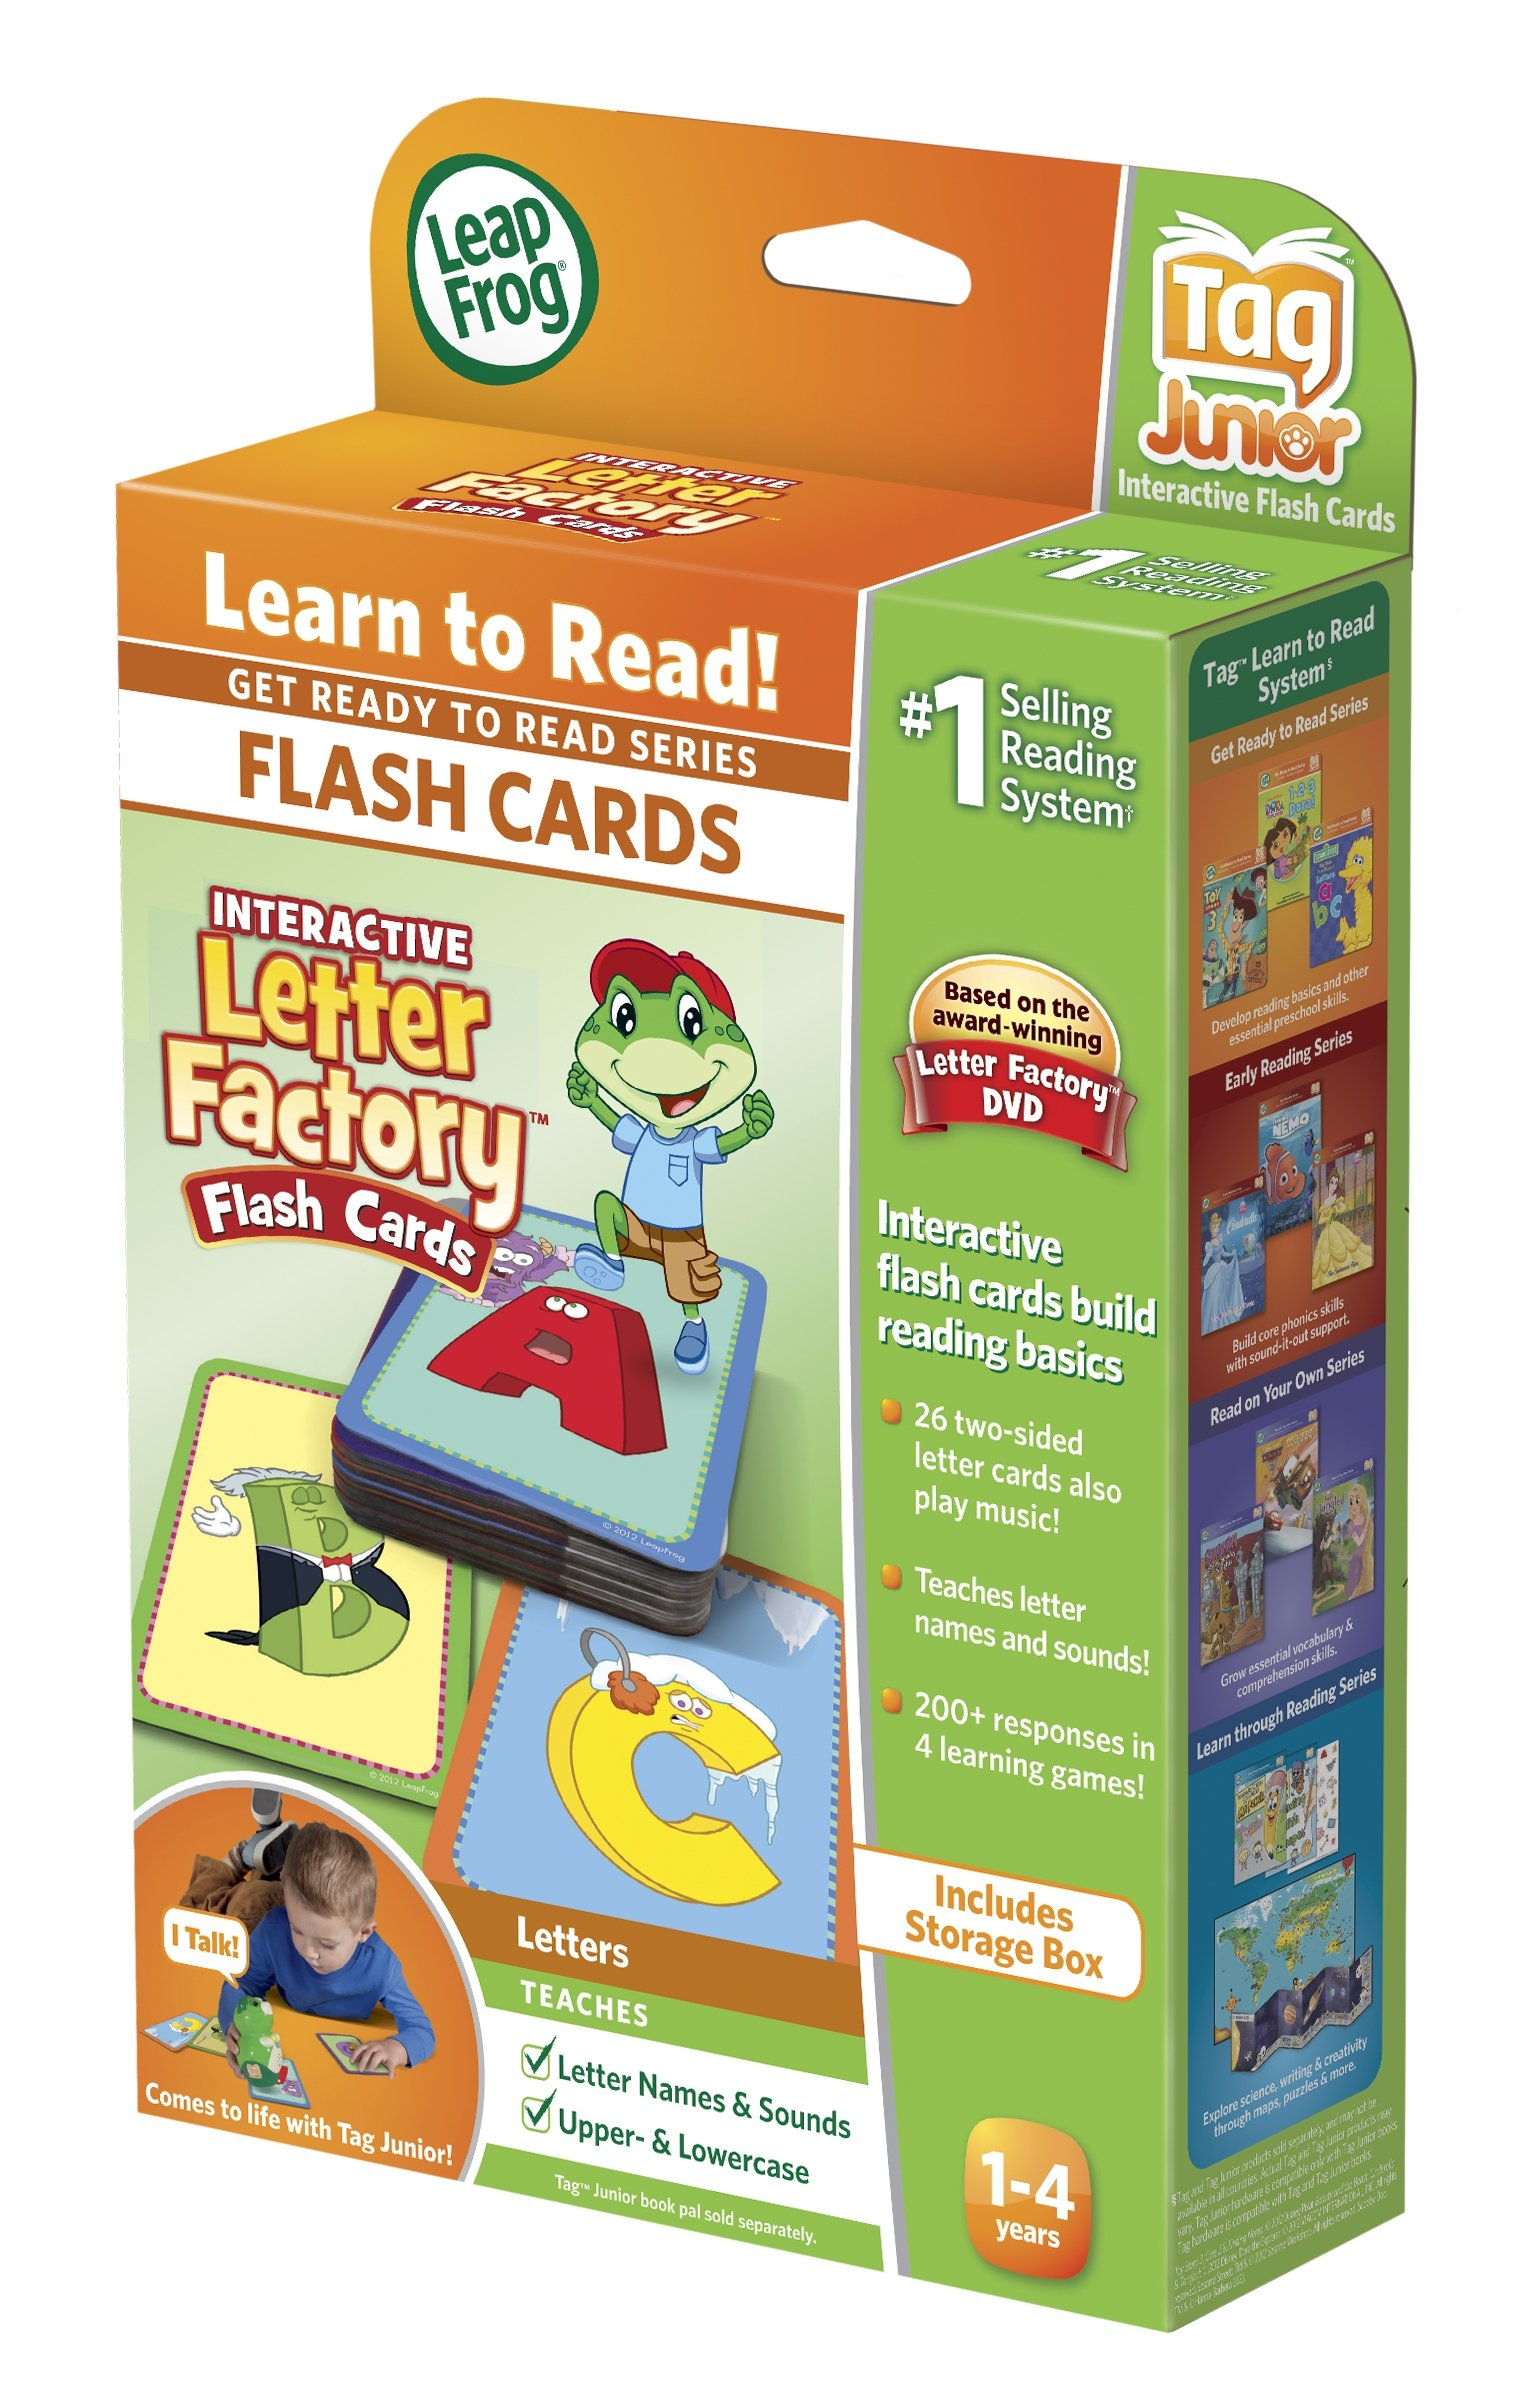 LeapFrog LeapReader Junior Interactive Letter Factory Flash Cards (works with Tag Junior) by LeapFrog (Image #7)